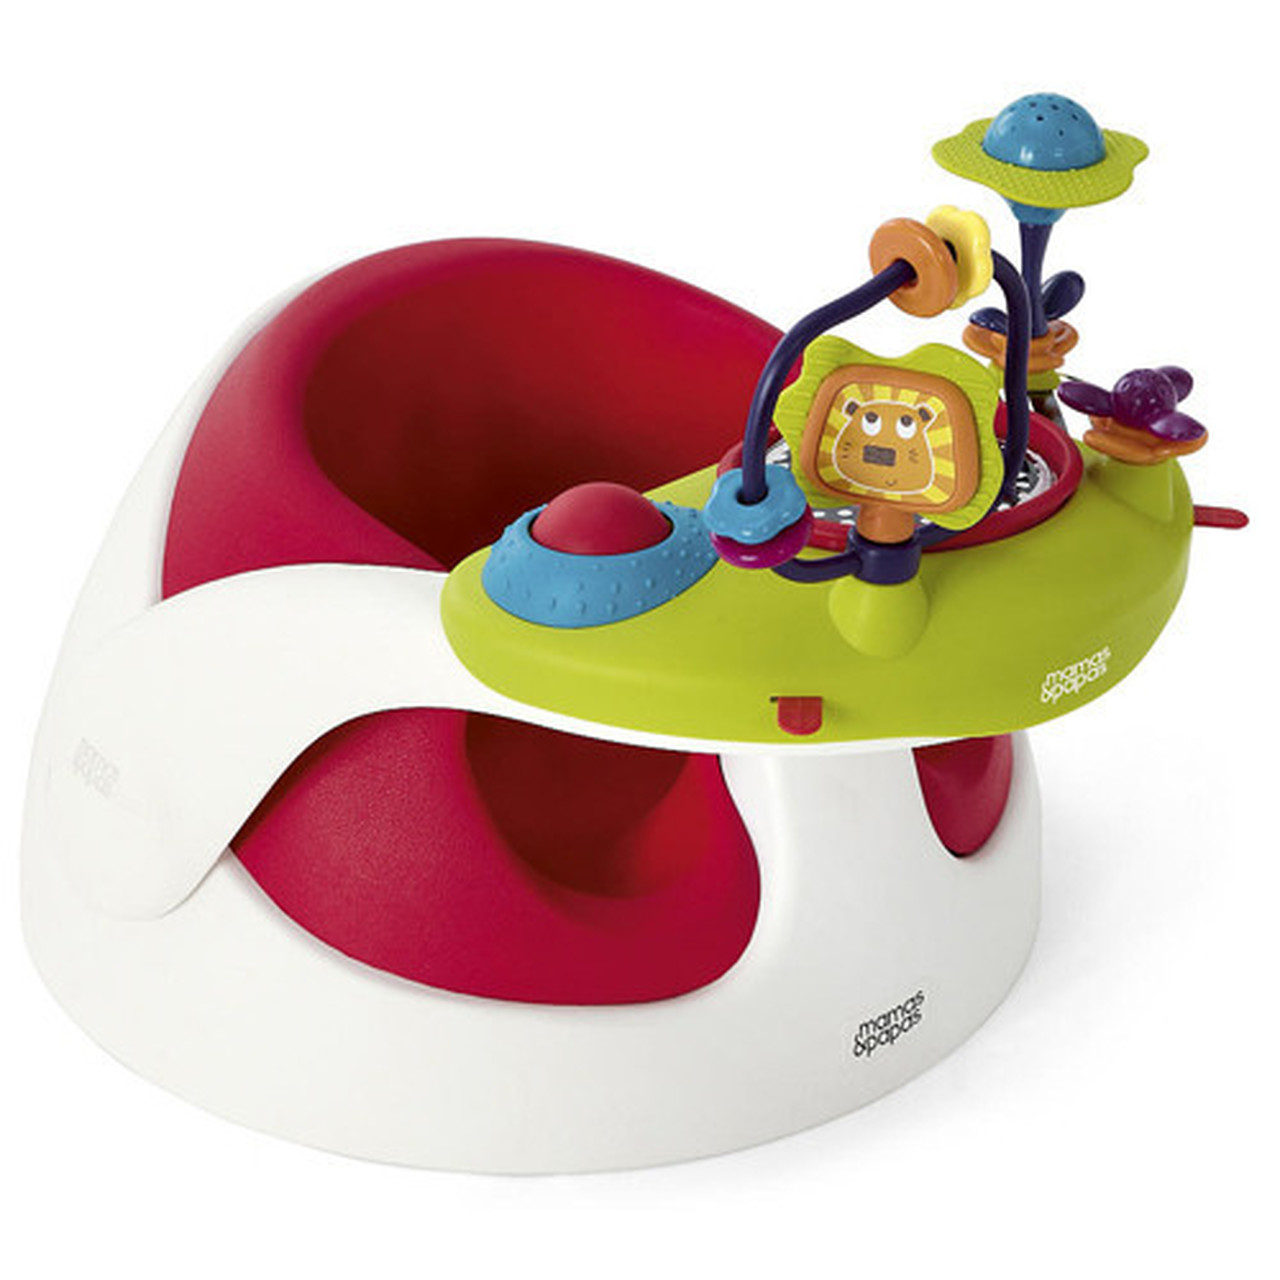 Mamas & Papas Baby Snug and Activity Tray